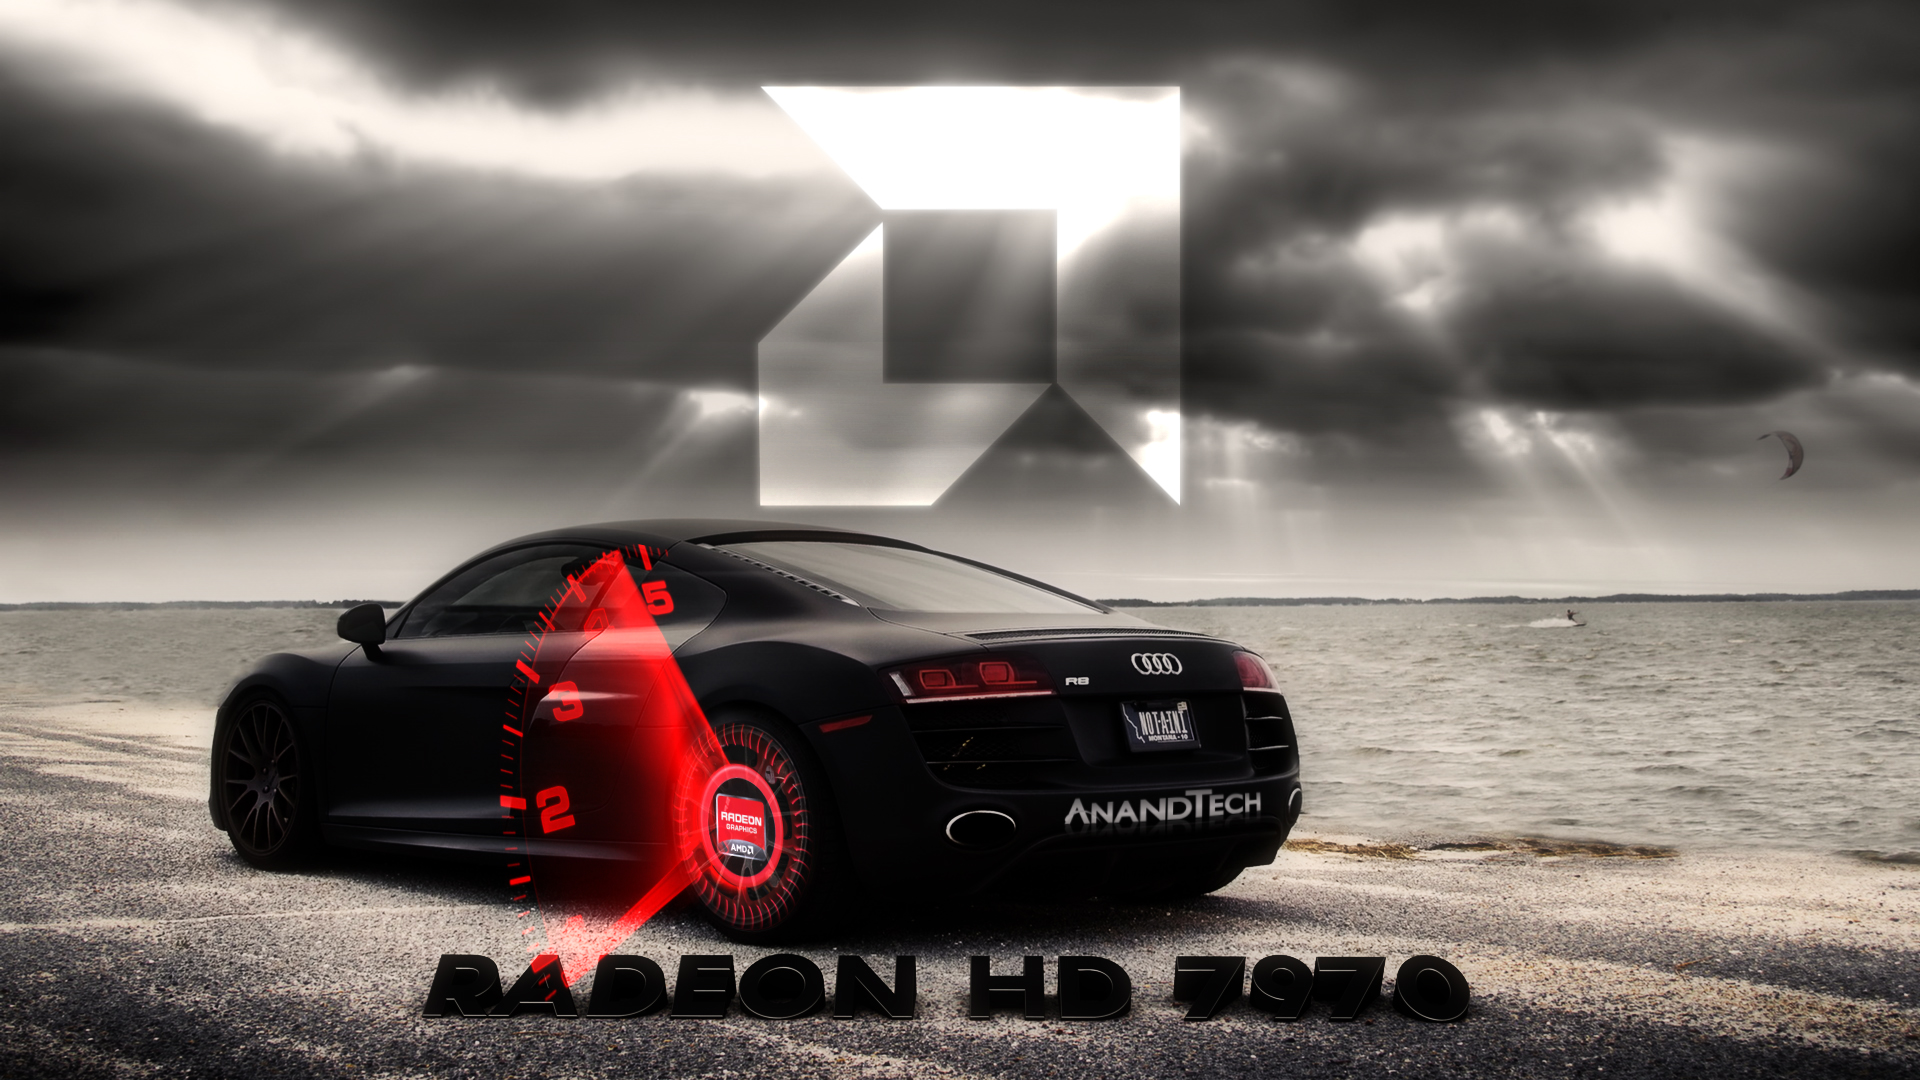 Group Of Amd Black Vision Wallpaper